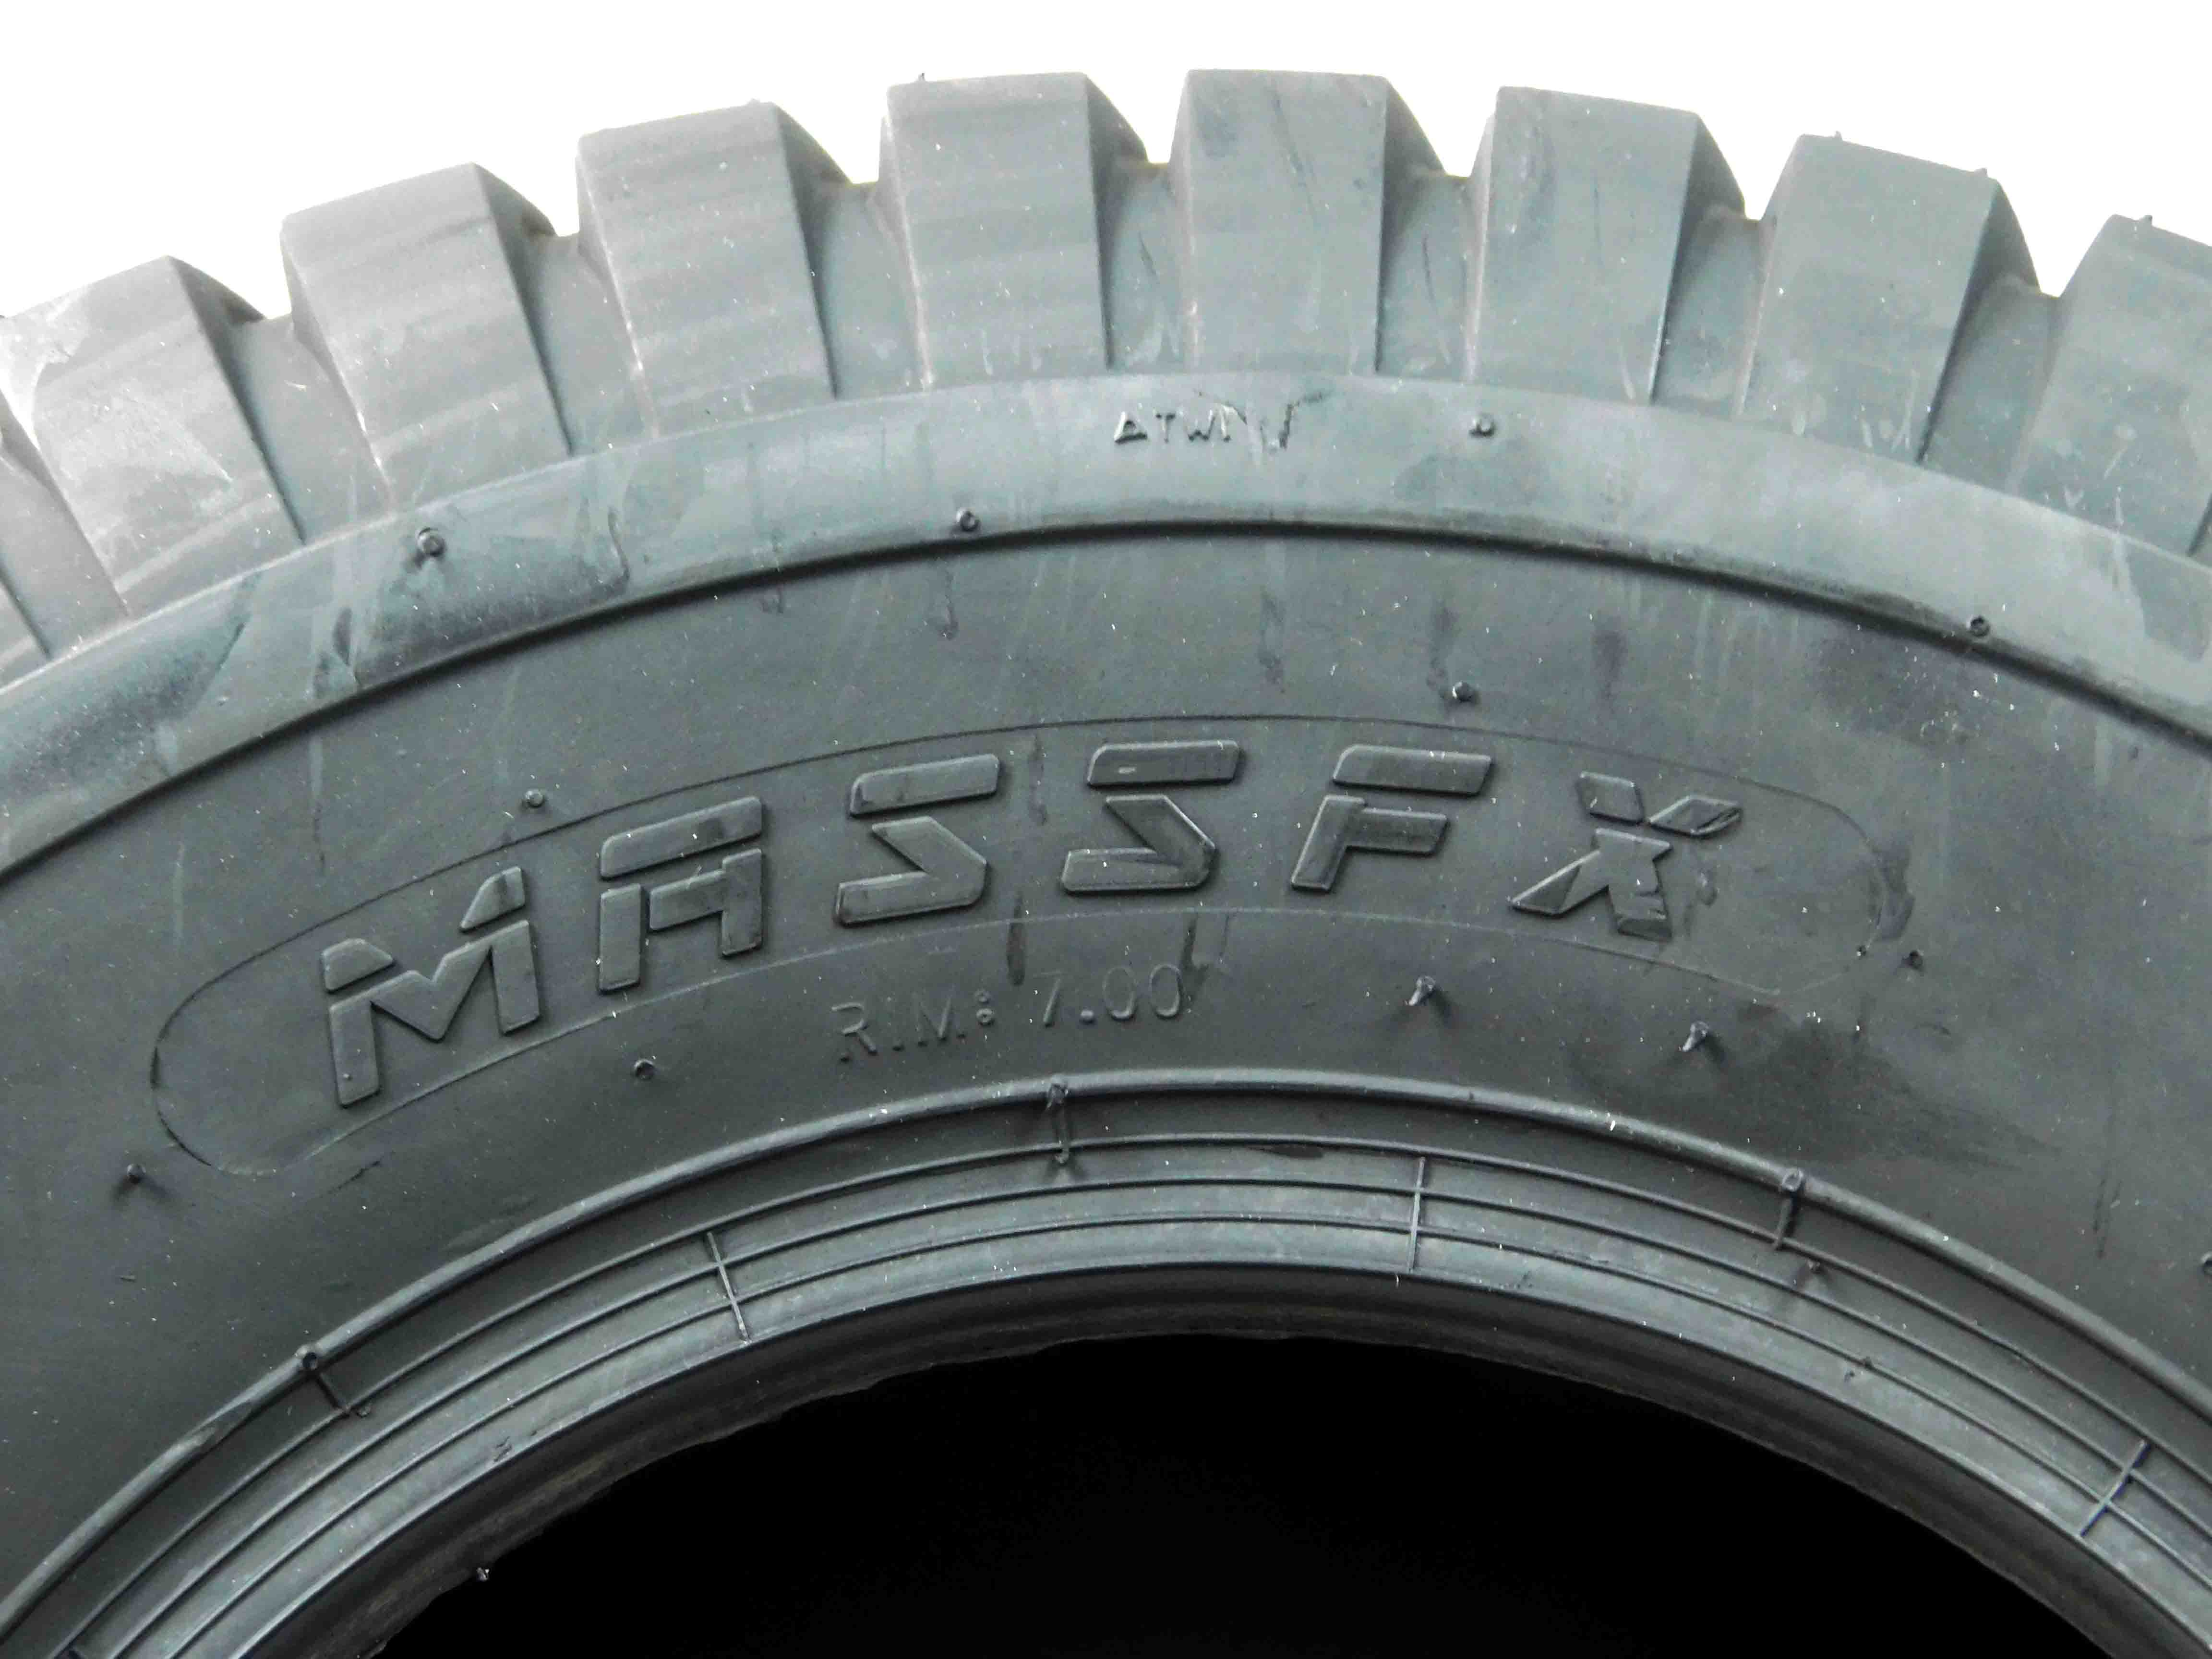 MASSFX-18x8.50-8-Lawn-Garden-Tires-4ply-image-3